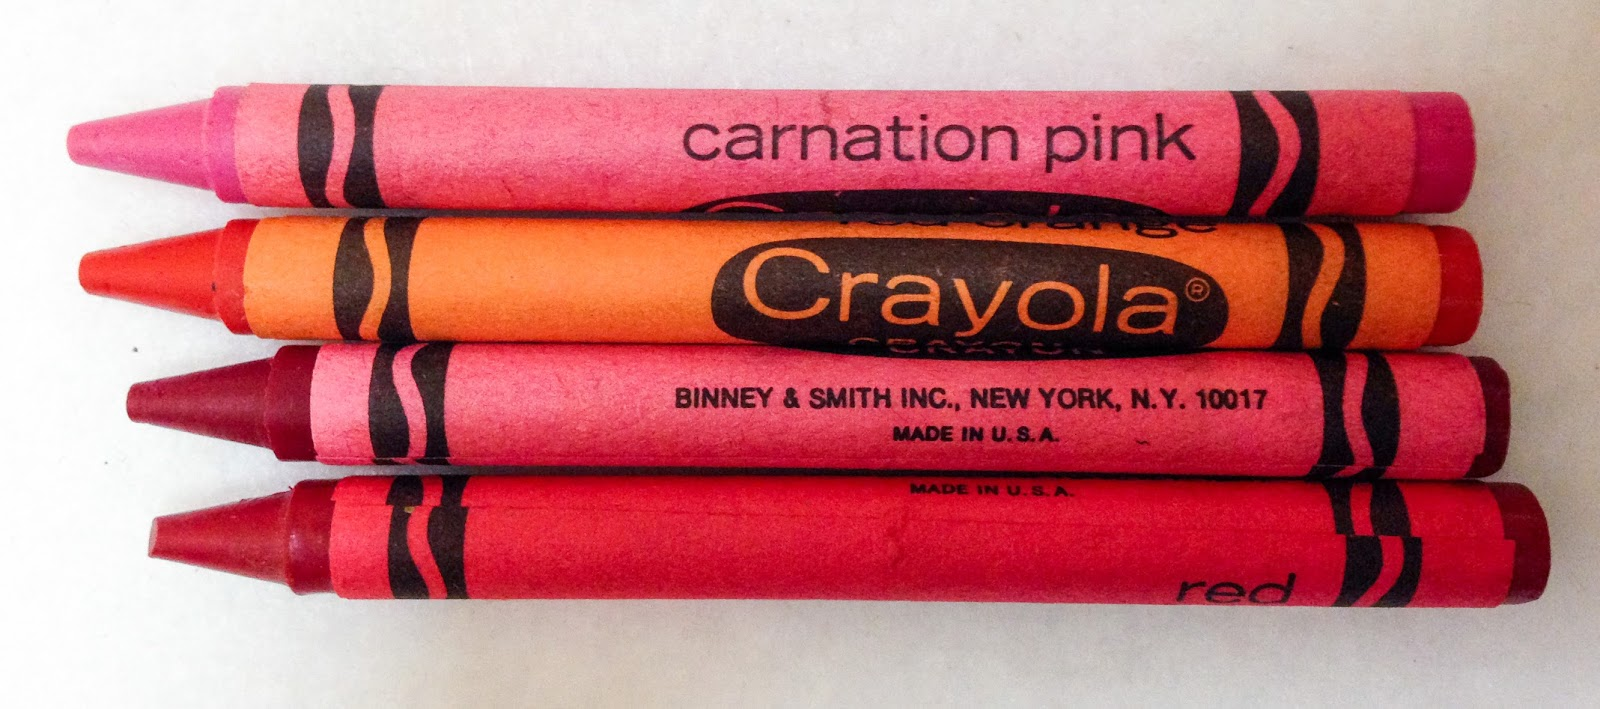 No. 24 P Crayola Crayons | Jenny's Crayon Collection